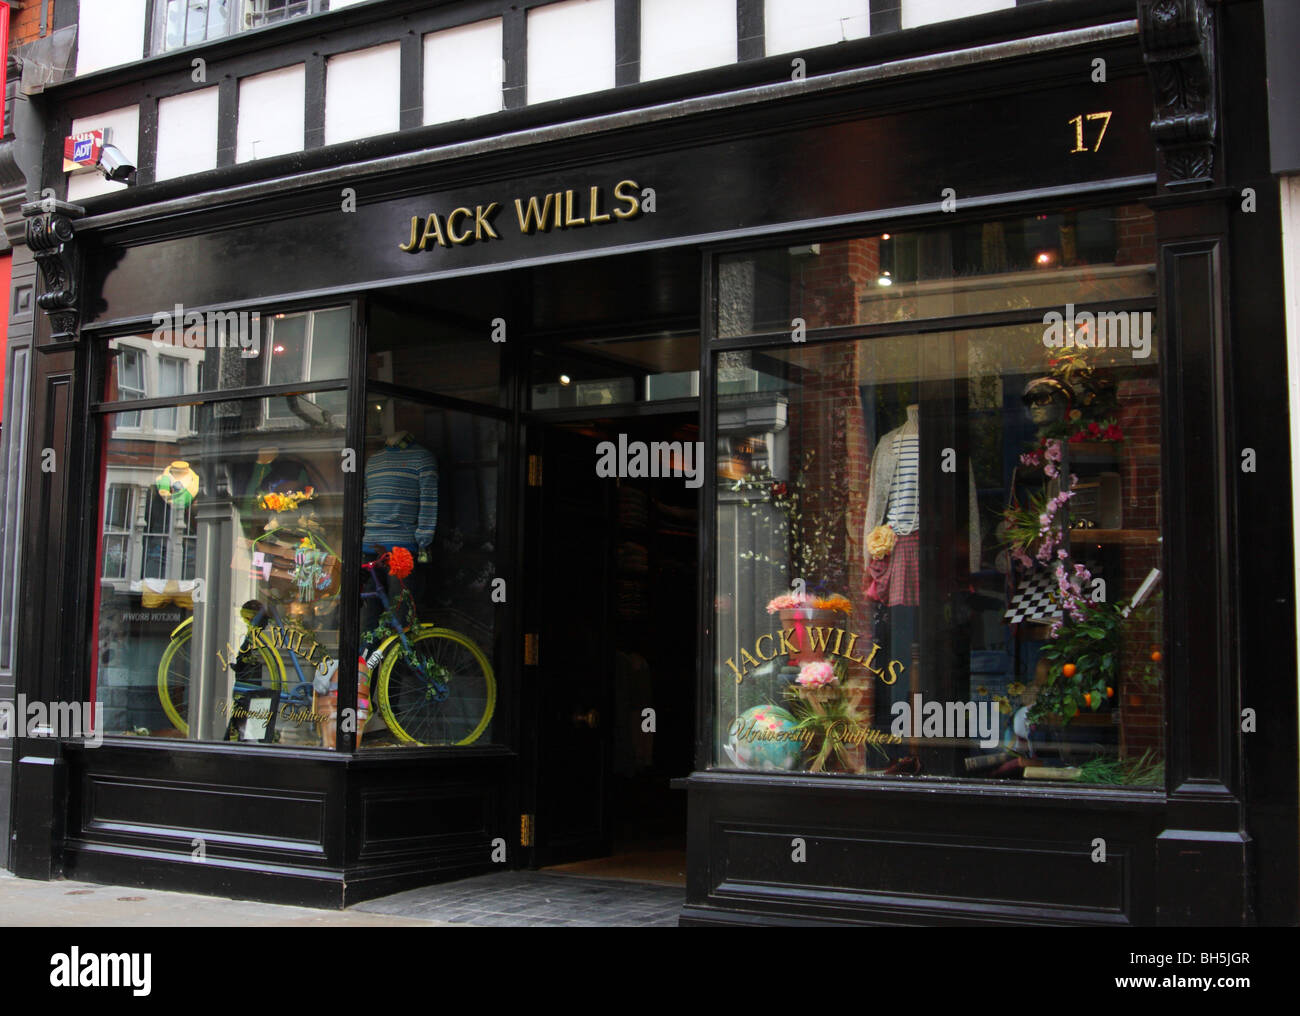 A Jack Wills retail outlet in Nottingham, England, U.K. - Stock Image